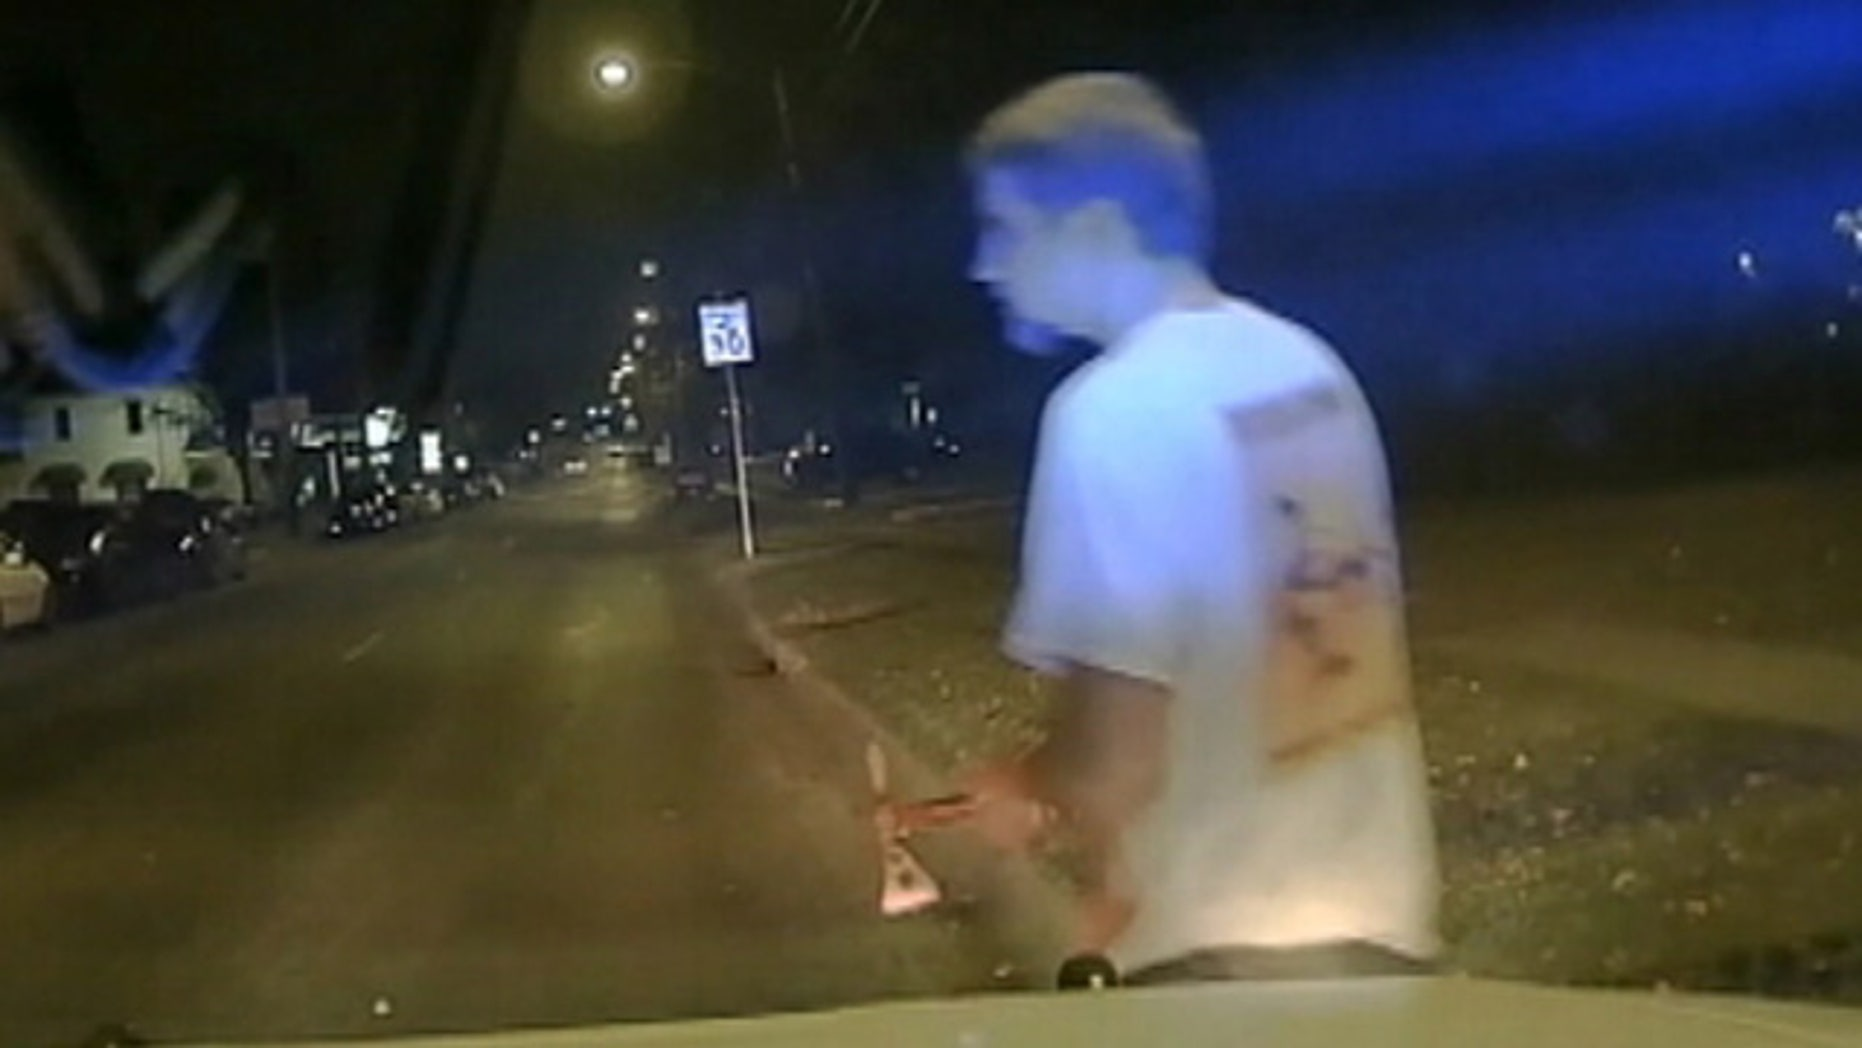 Dec. 13, 2015: This image take from dashcam video shows University of North Texas student Ryan McMillan seconds before he was shot and killed by a campus police officer in Denton, Texas. (Texas Department of Public Safety)